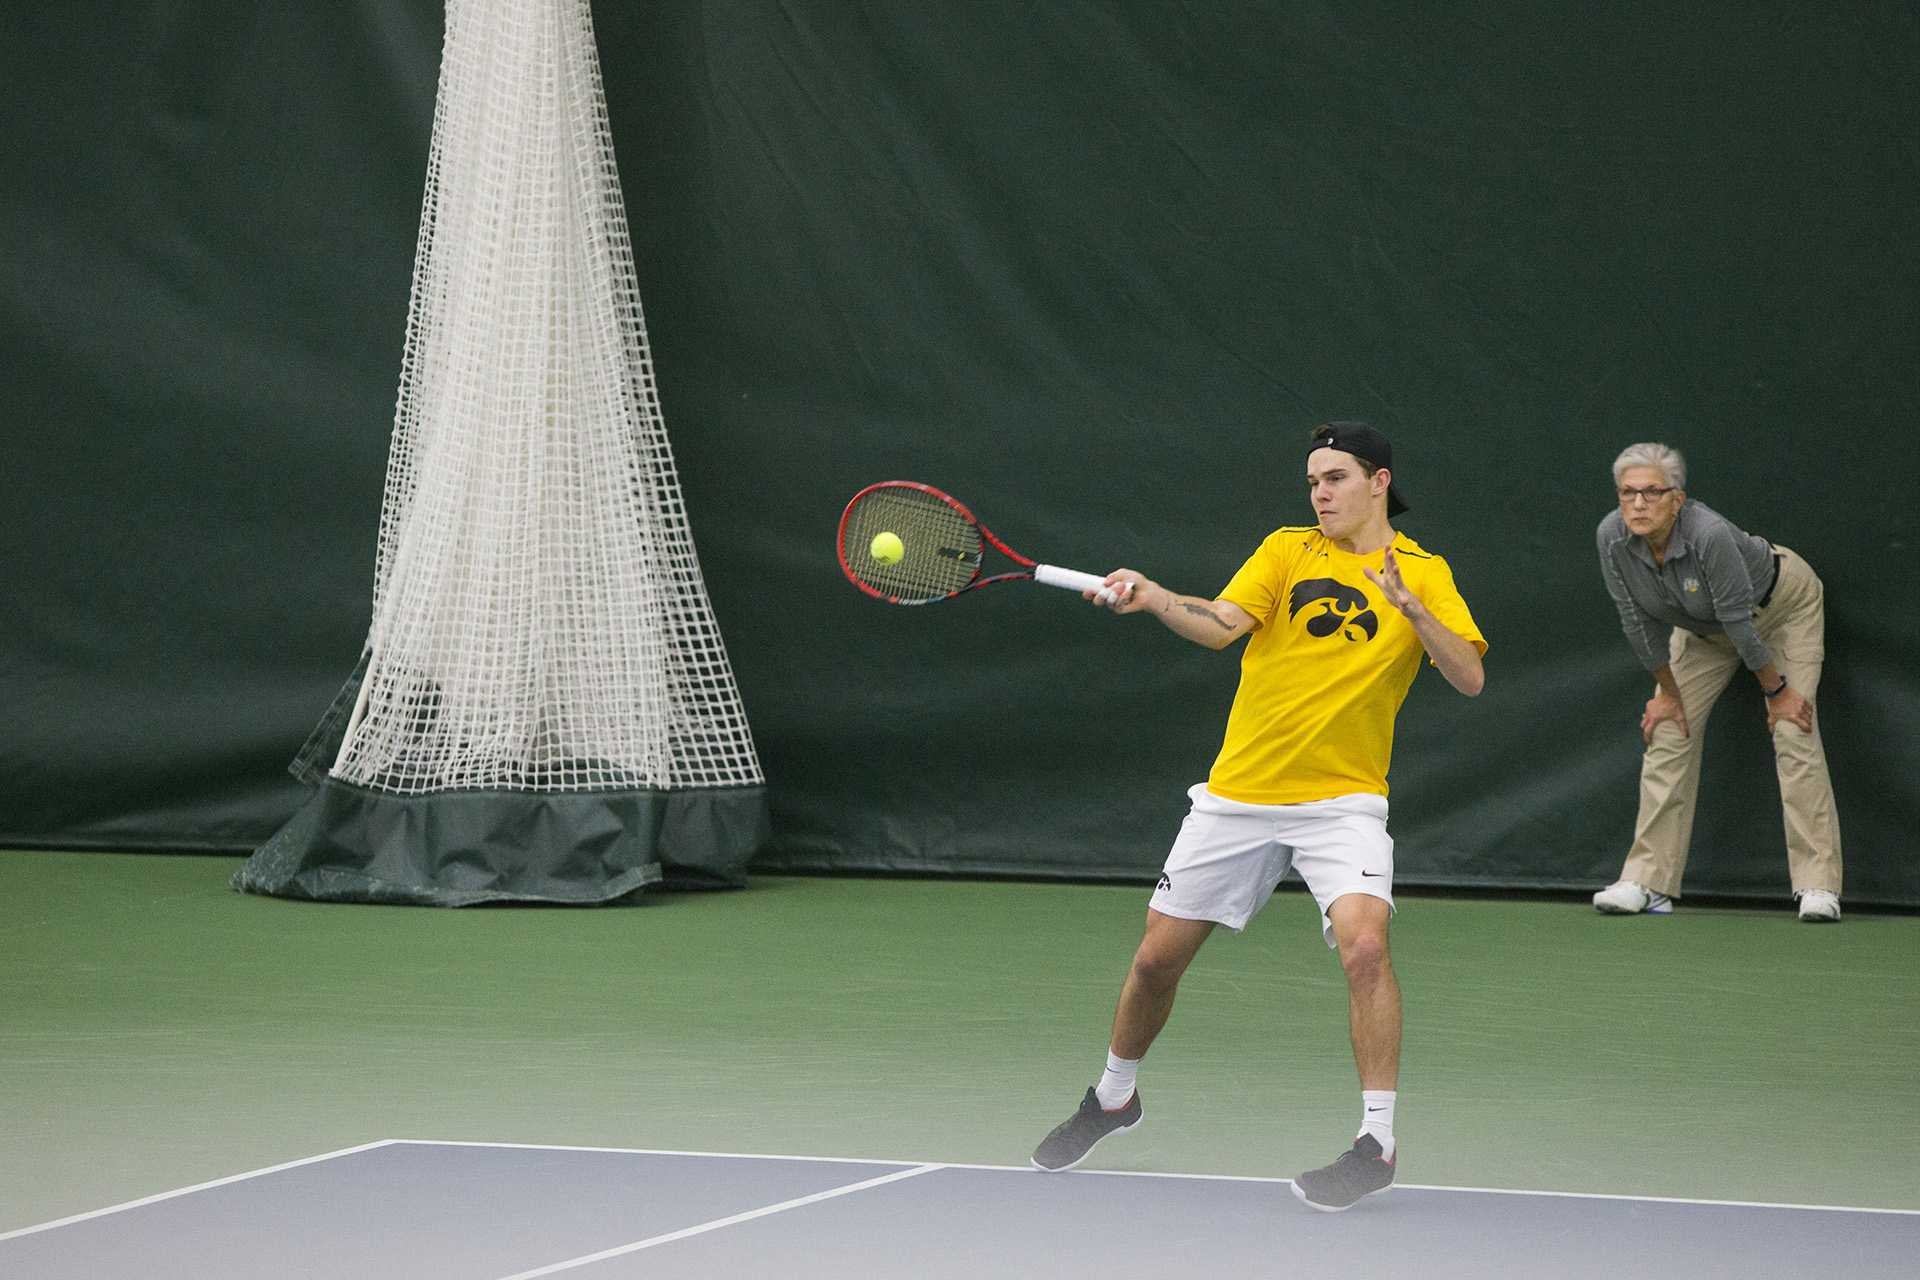 Iowa's Jonas Larsen returns a ball during the Iowa/Creighton tennis match at the Hawkeye Tennis and Recreation Complex on Friday, Feb. 16, 2018. The Hawkeyes defeated the Bluejays, 7-0. (Lily Smith/The Daily Iowan)